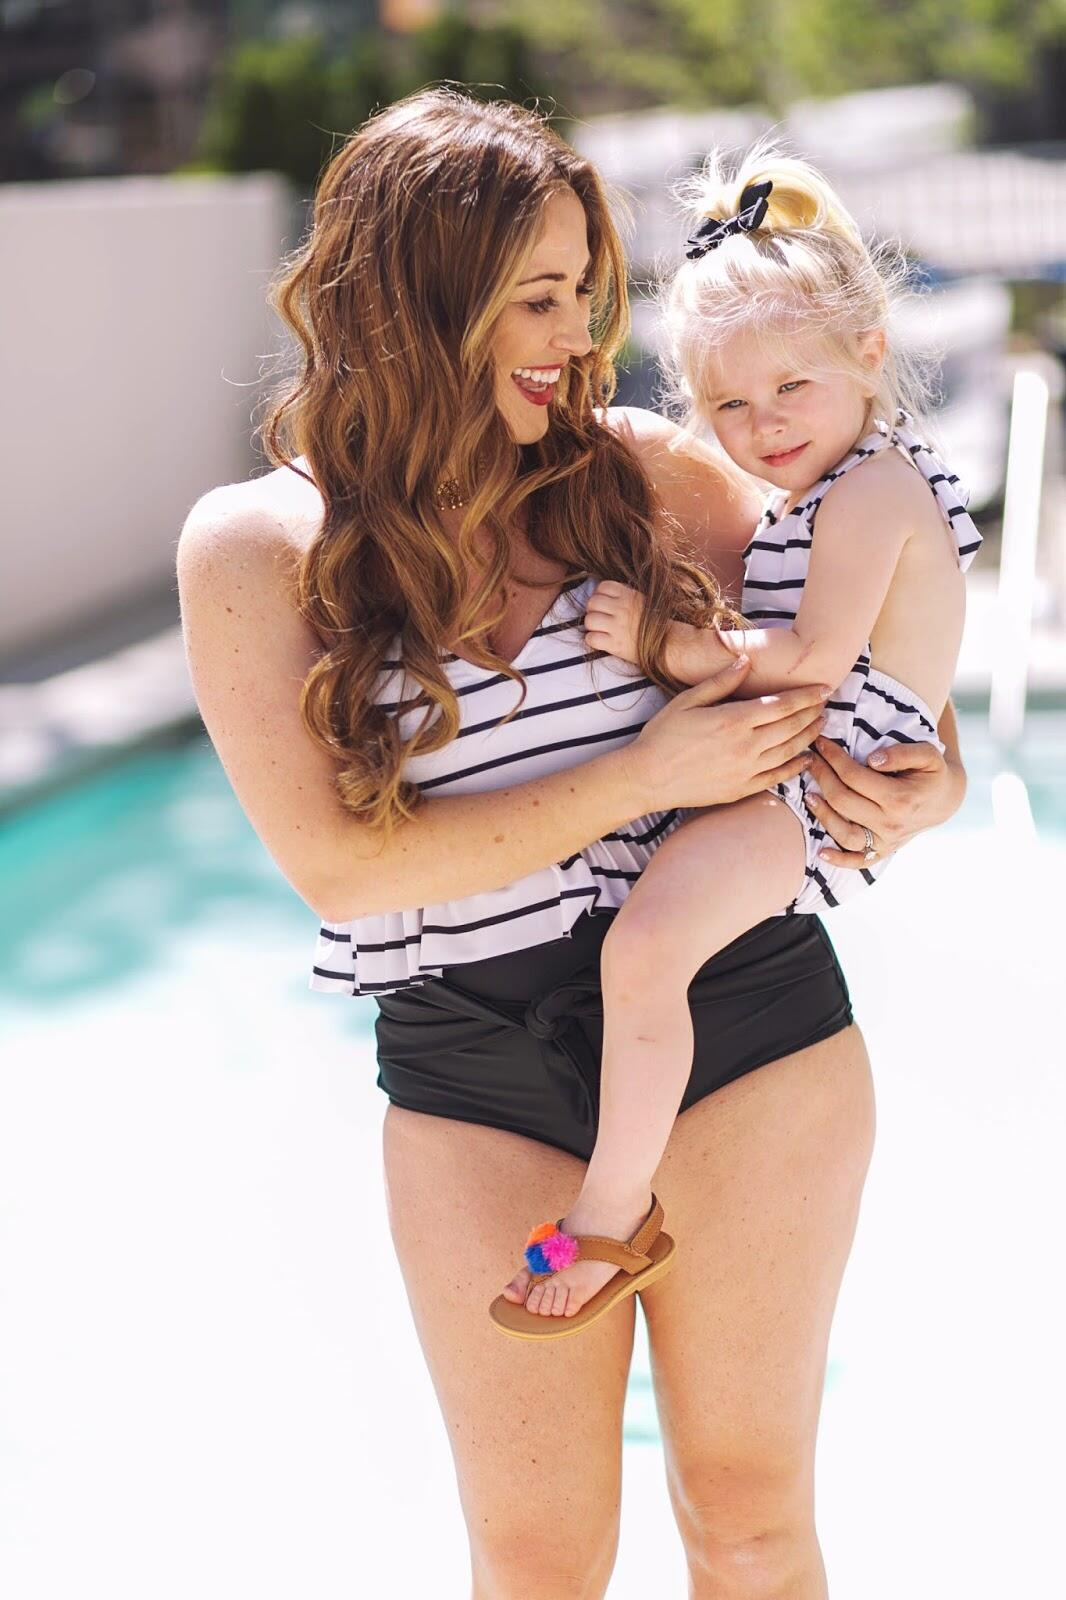 Swimsuits For Moms & My 30 Day Sugar Detox by lifestyle blogger Laura of Walking in Memphis in High Heels